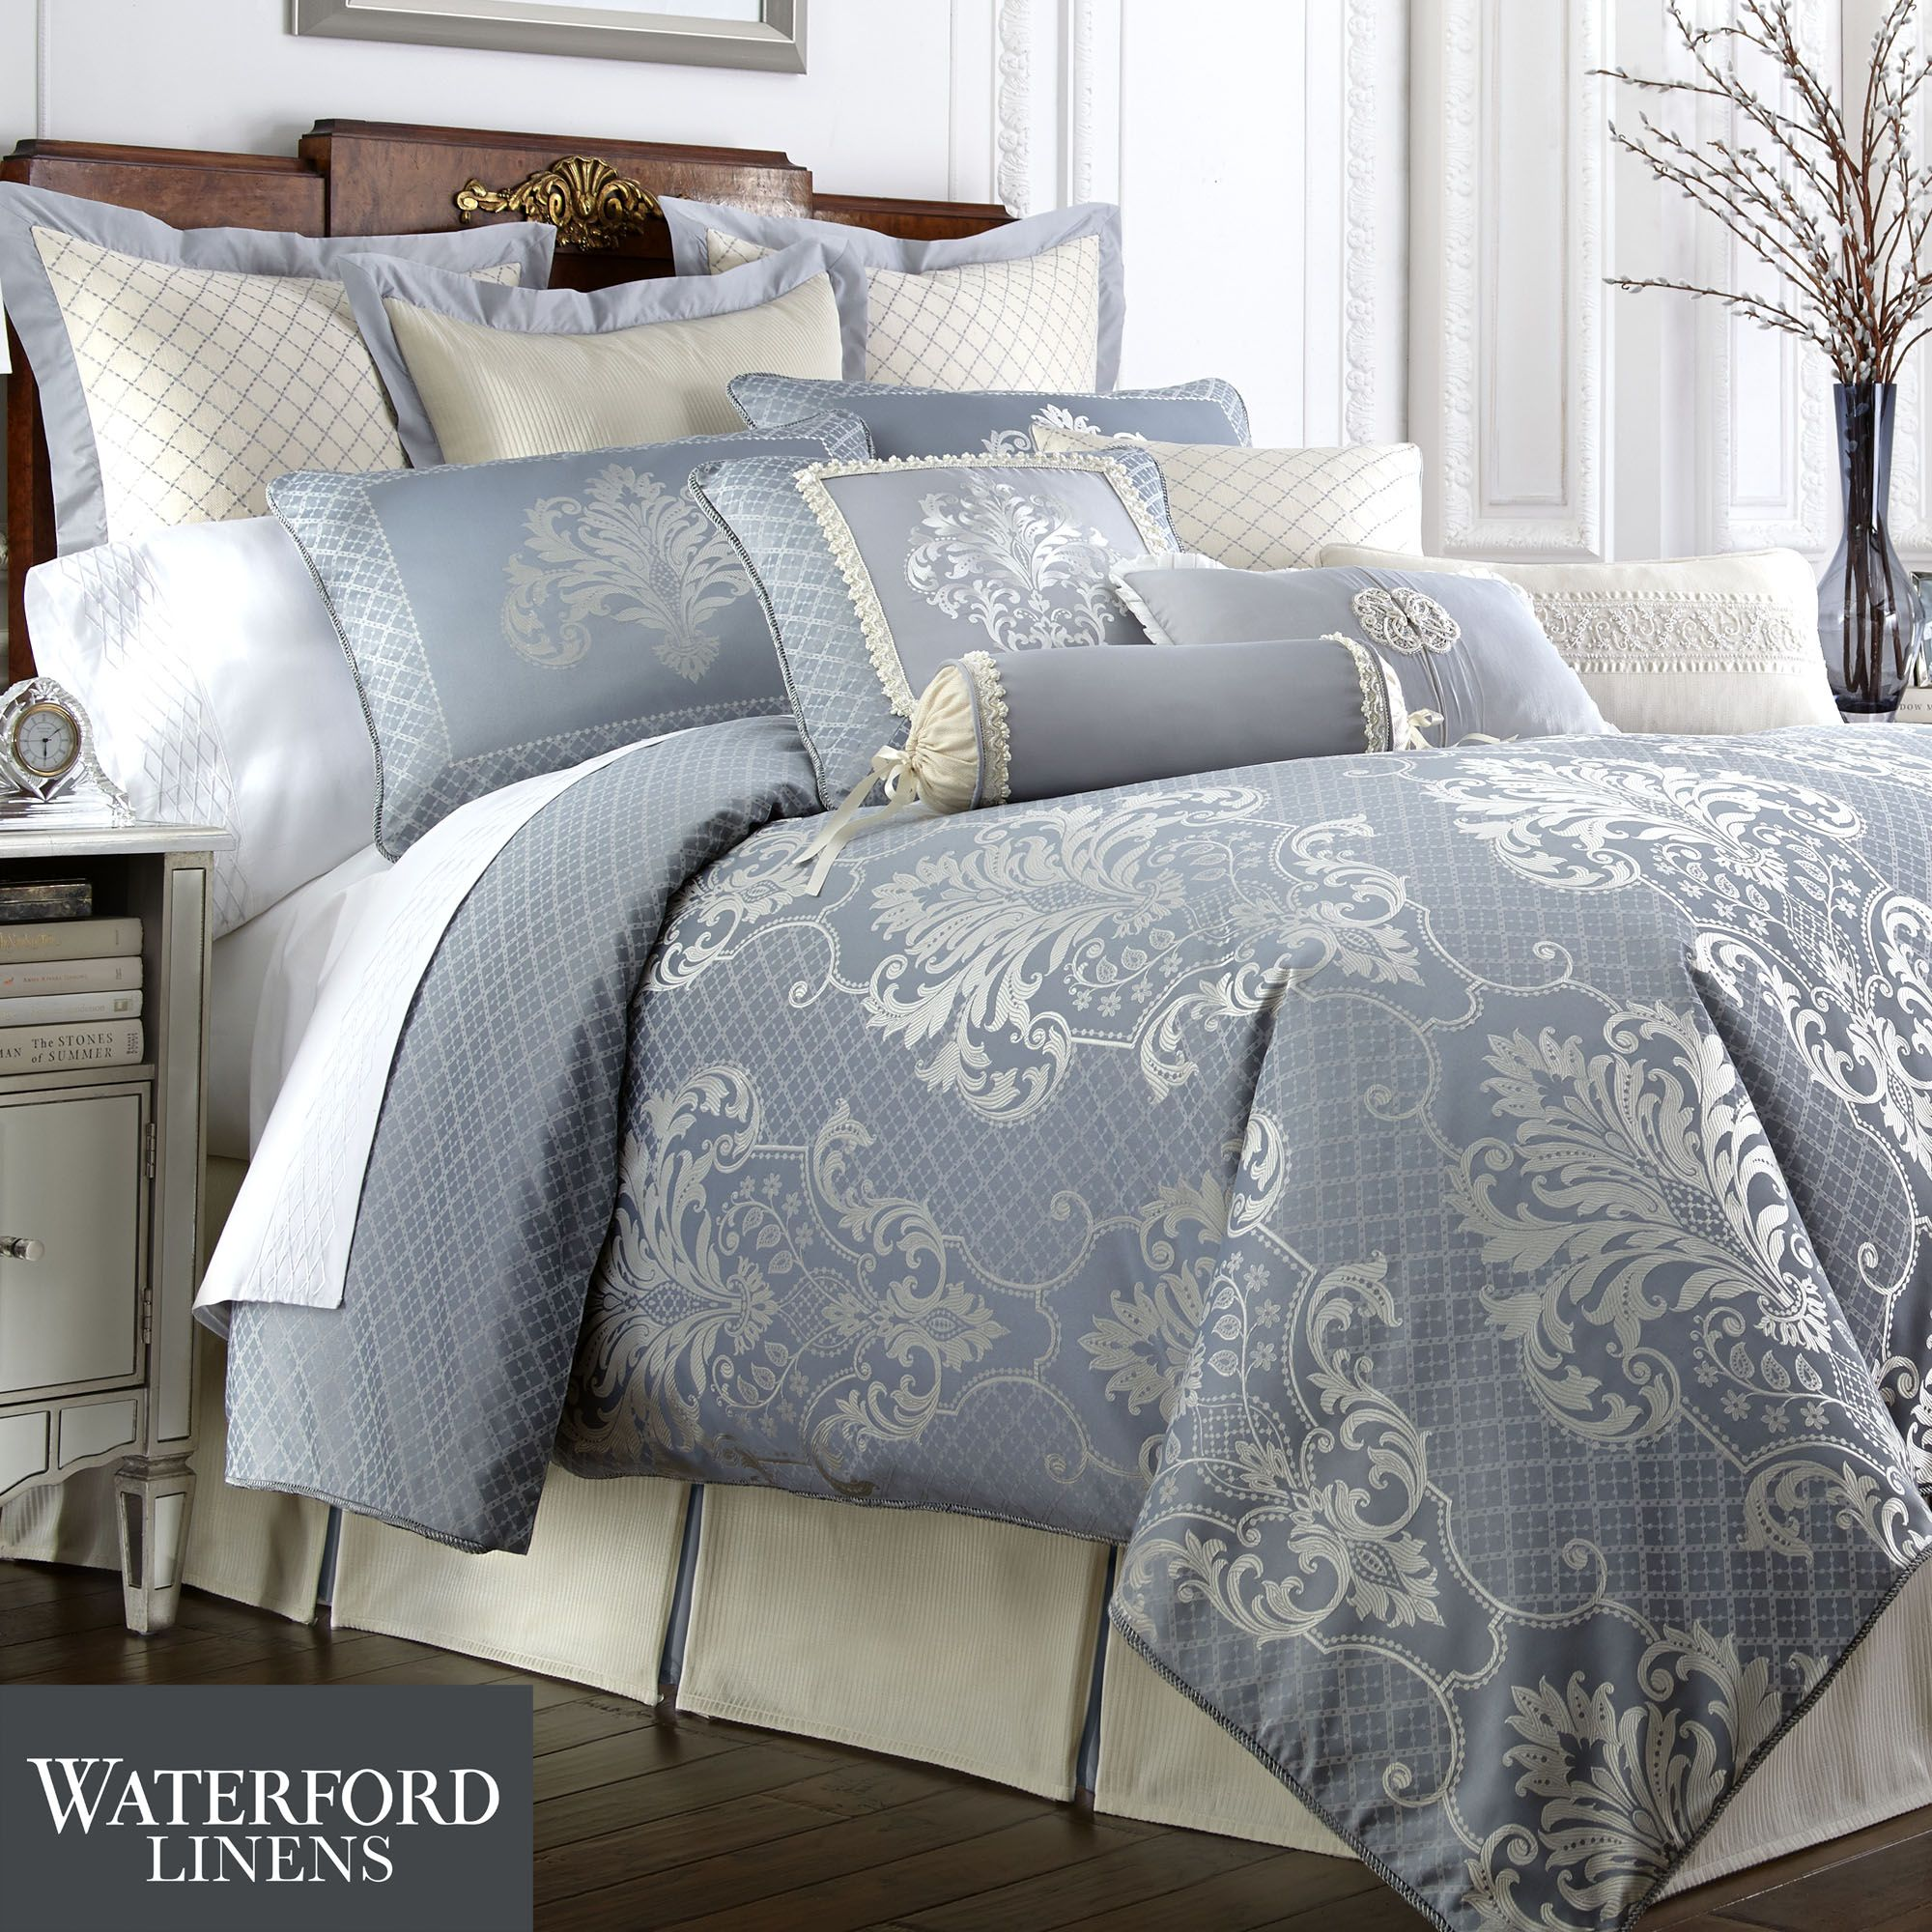 Bedroom: Using Luxury Comforter Sets For Wonderful Bedroom